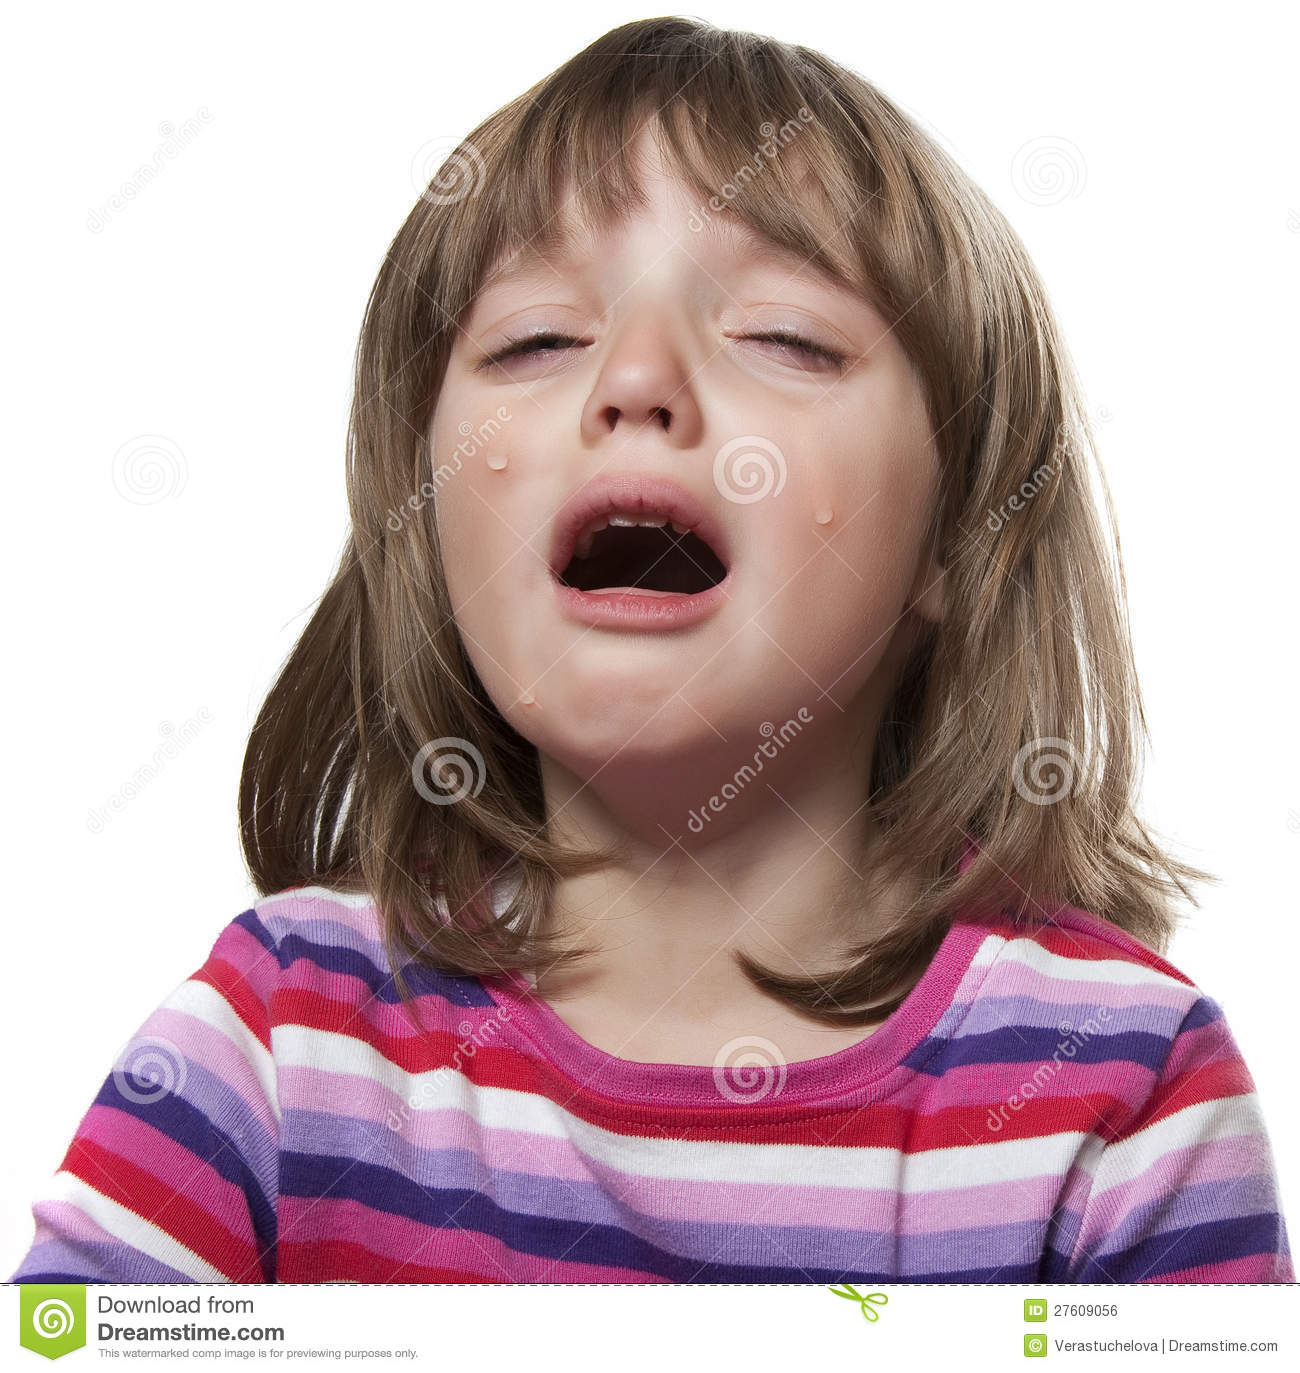 Crying Little Girl Royalty Free Stock Image - Image: 27609056